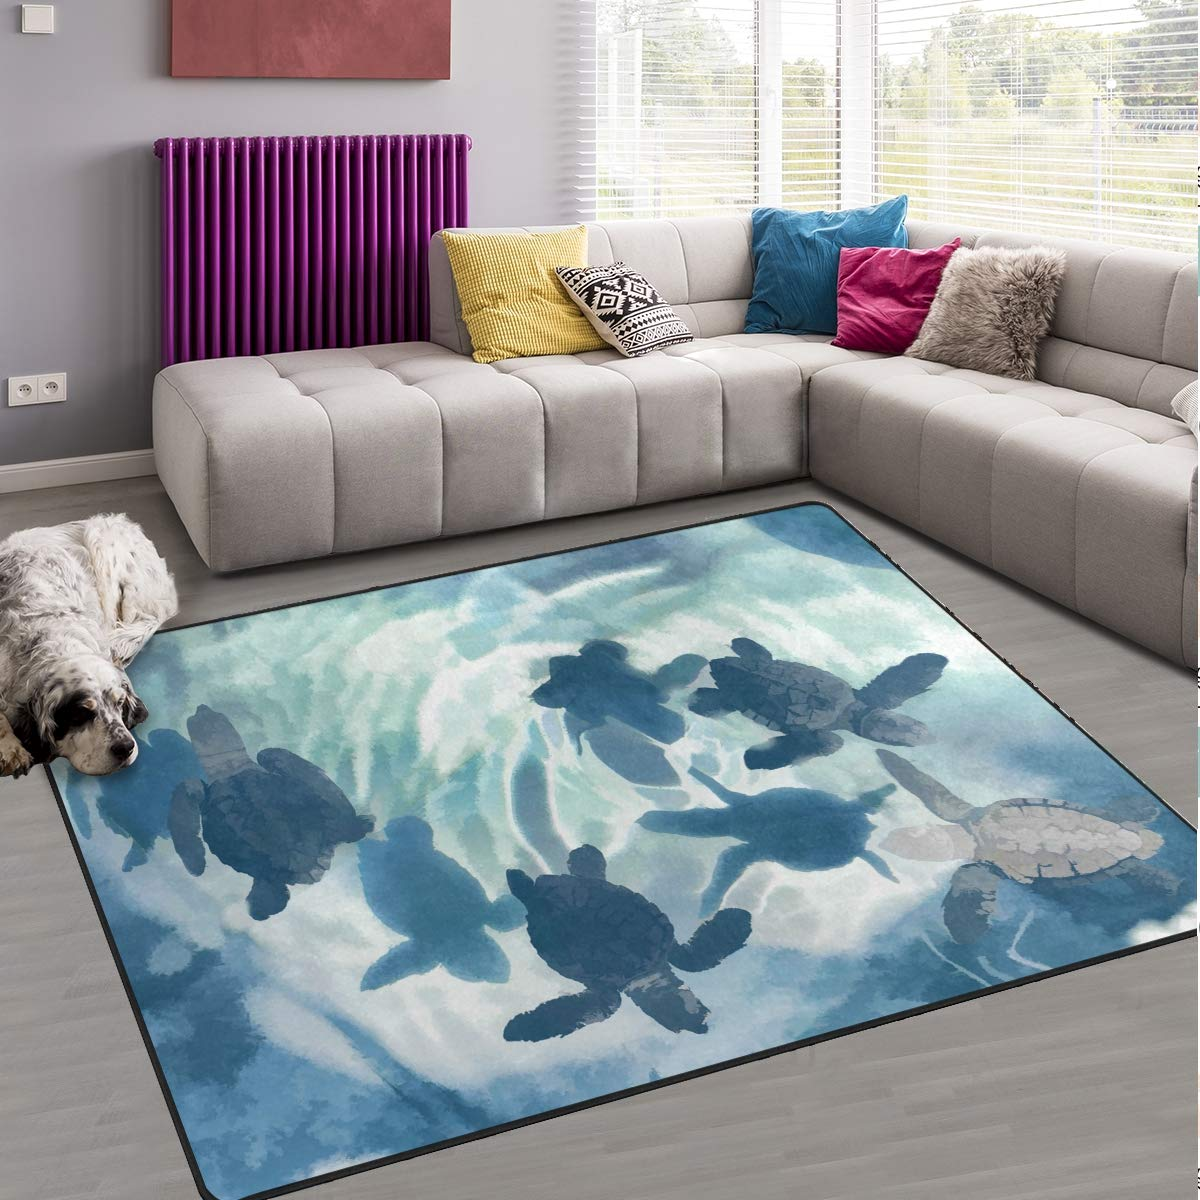 Naanle Ocean Sea Life Area Rug 4 x6 , Cute Sea Turtle Polyester Area Rug Mat for Living Dining Dorm Room Bedroom Home Decorative